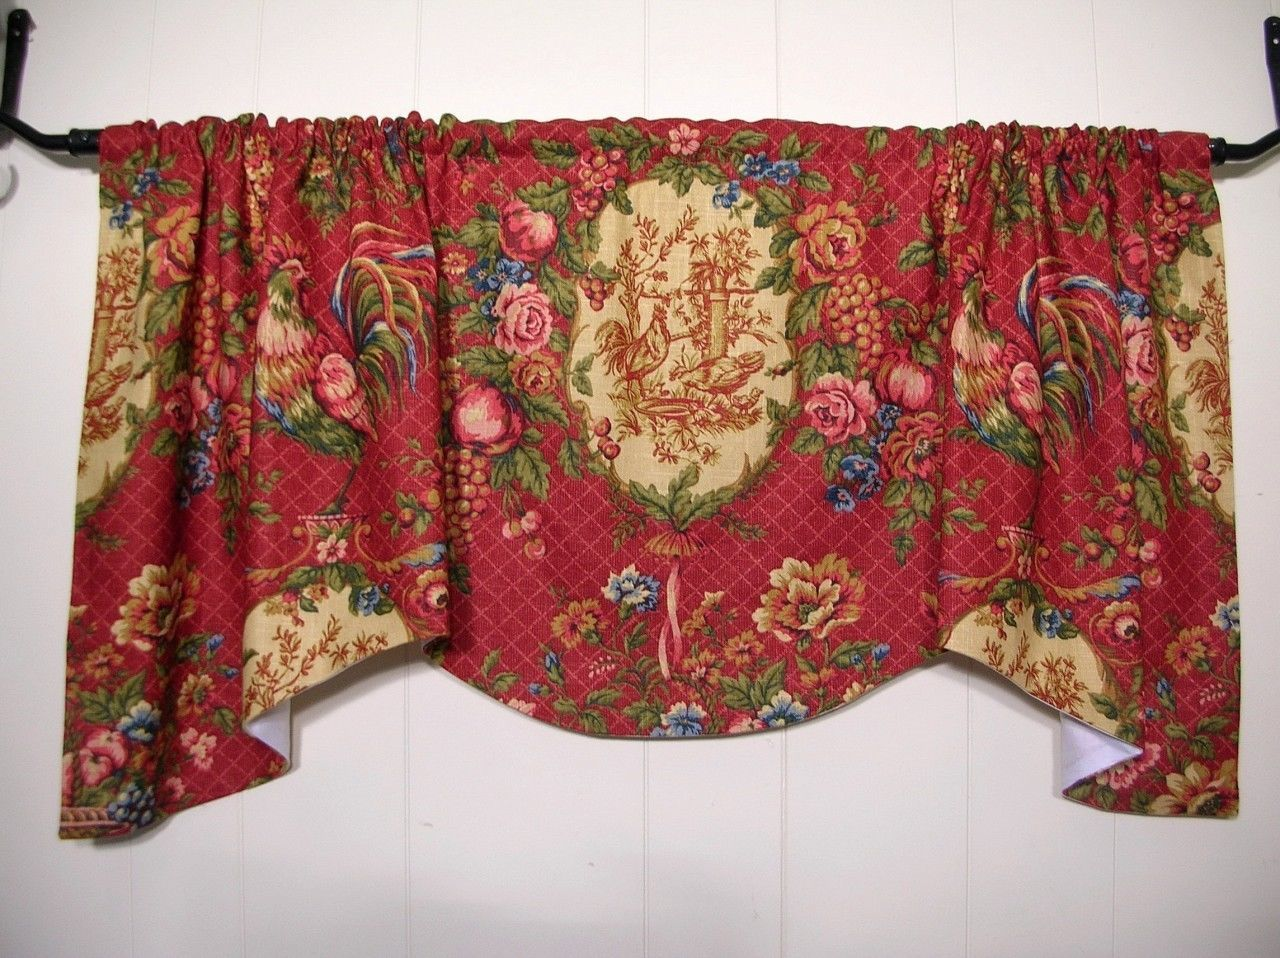 Waverly Saison De Printempts Red Rooster Toile Valance Comforting Cottage Colorful Curtains Curtains Homemade Curtains